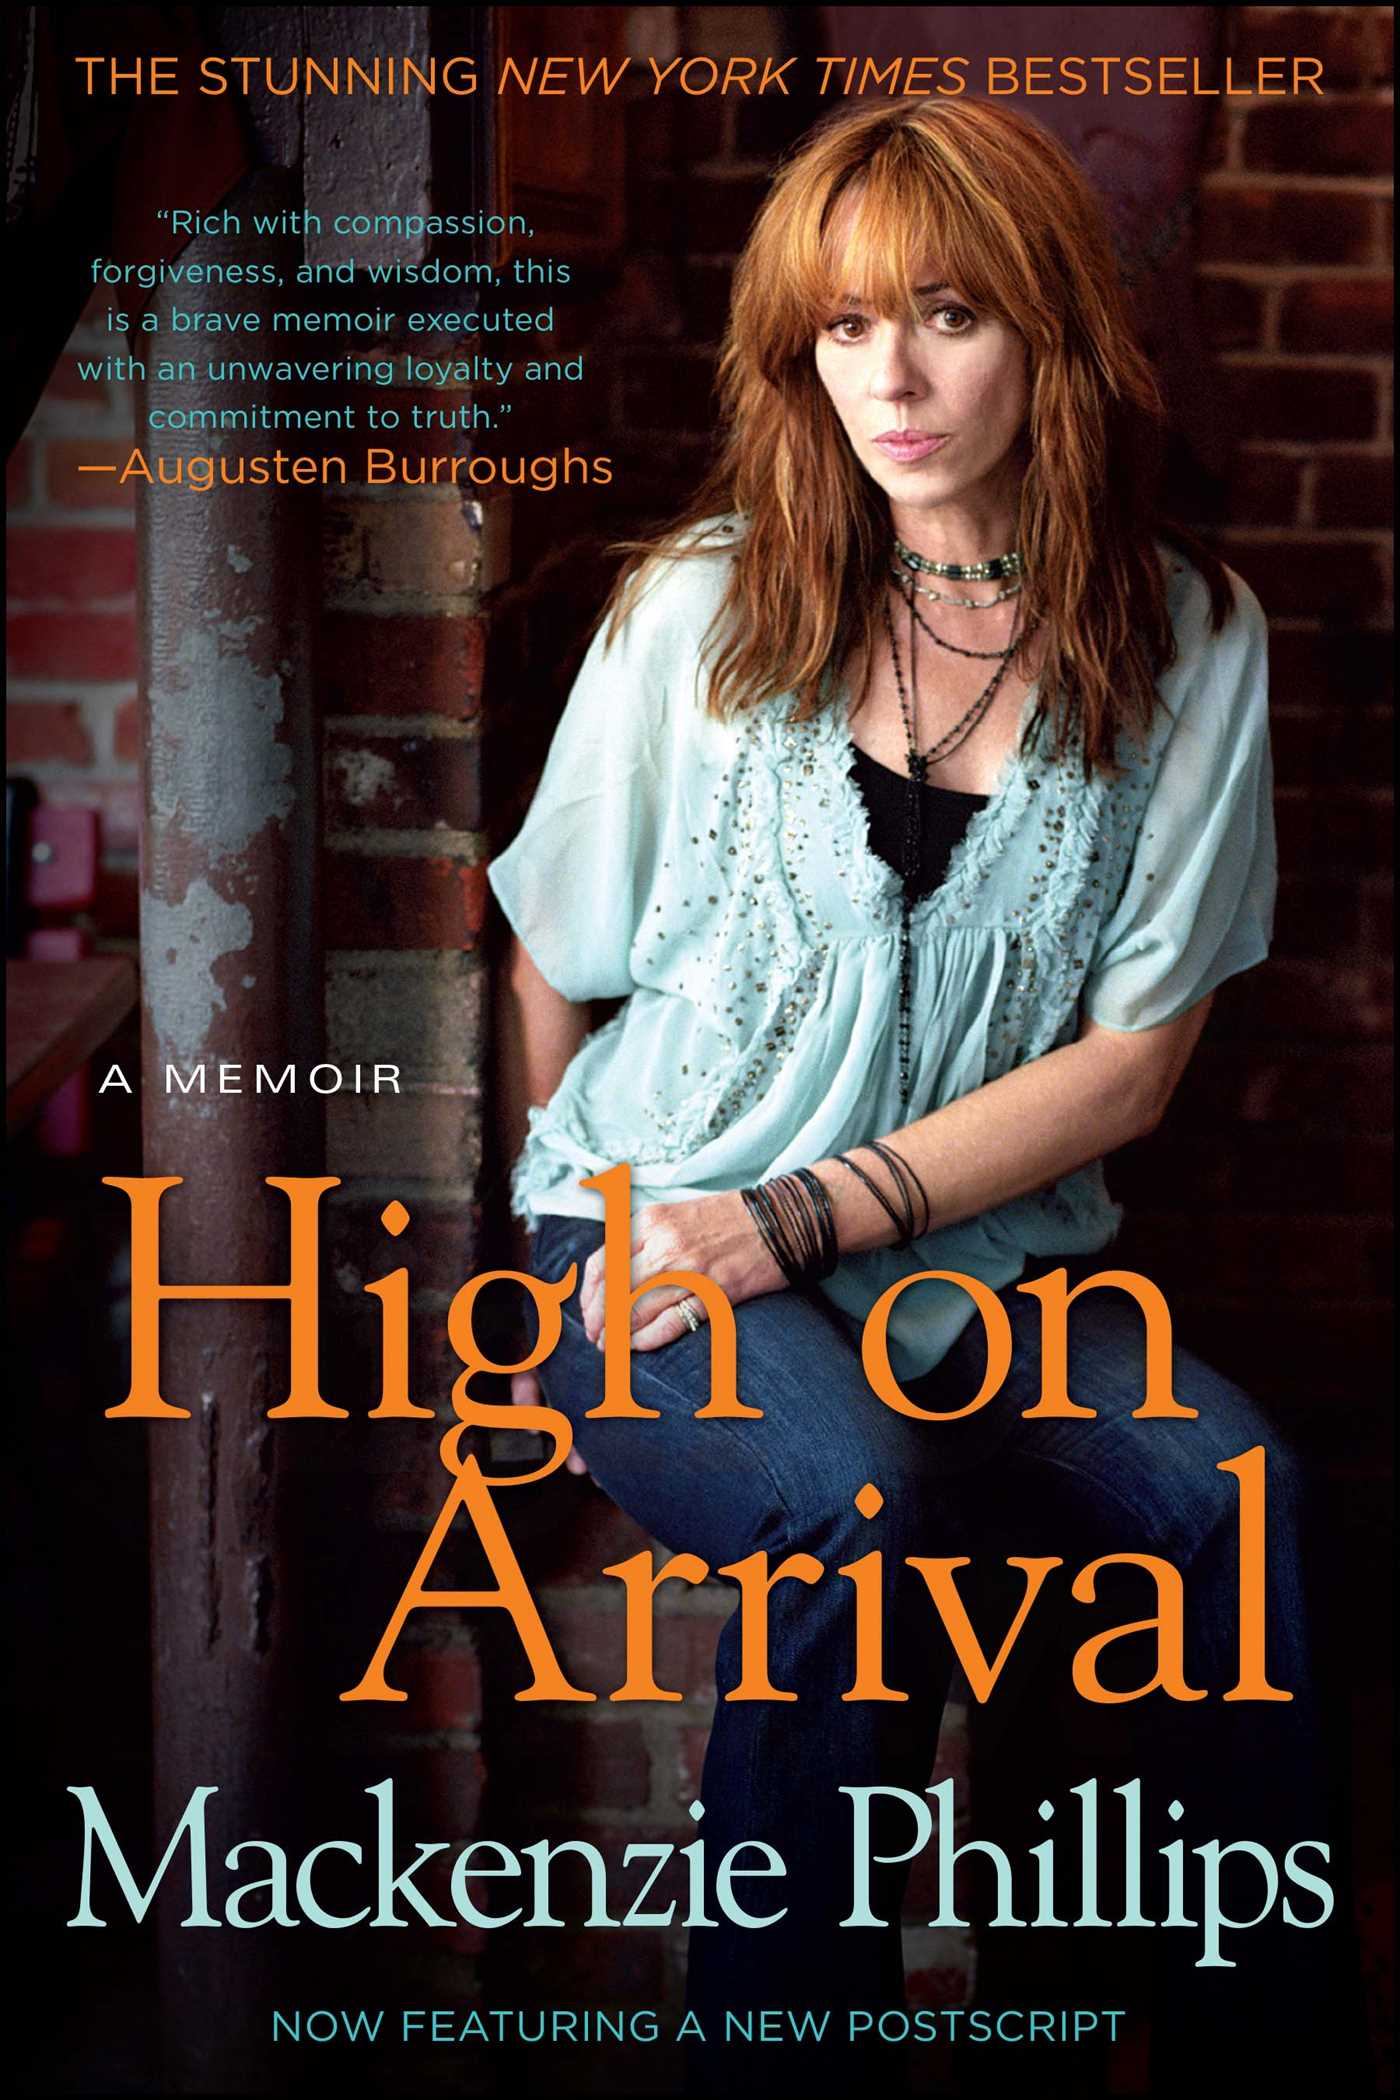 High-on-arrival-9781439157572_hr